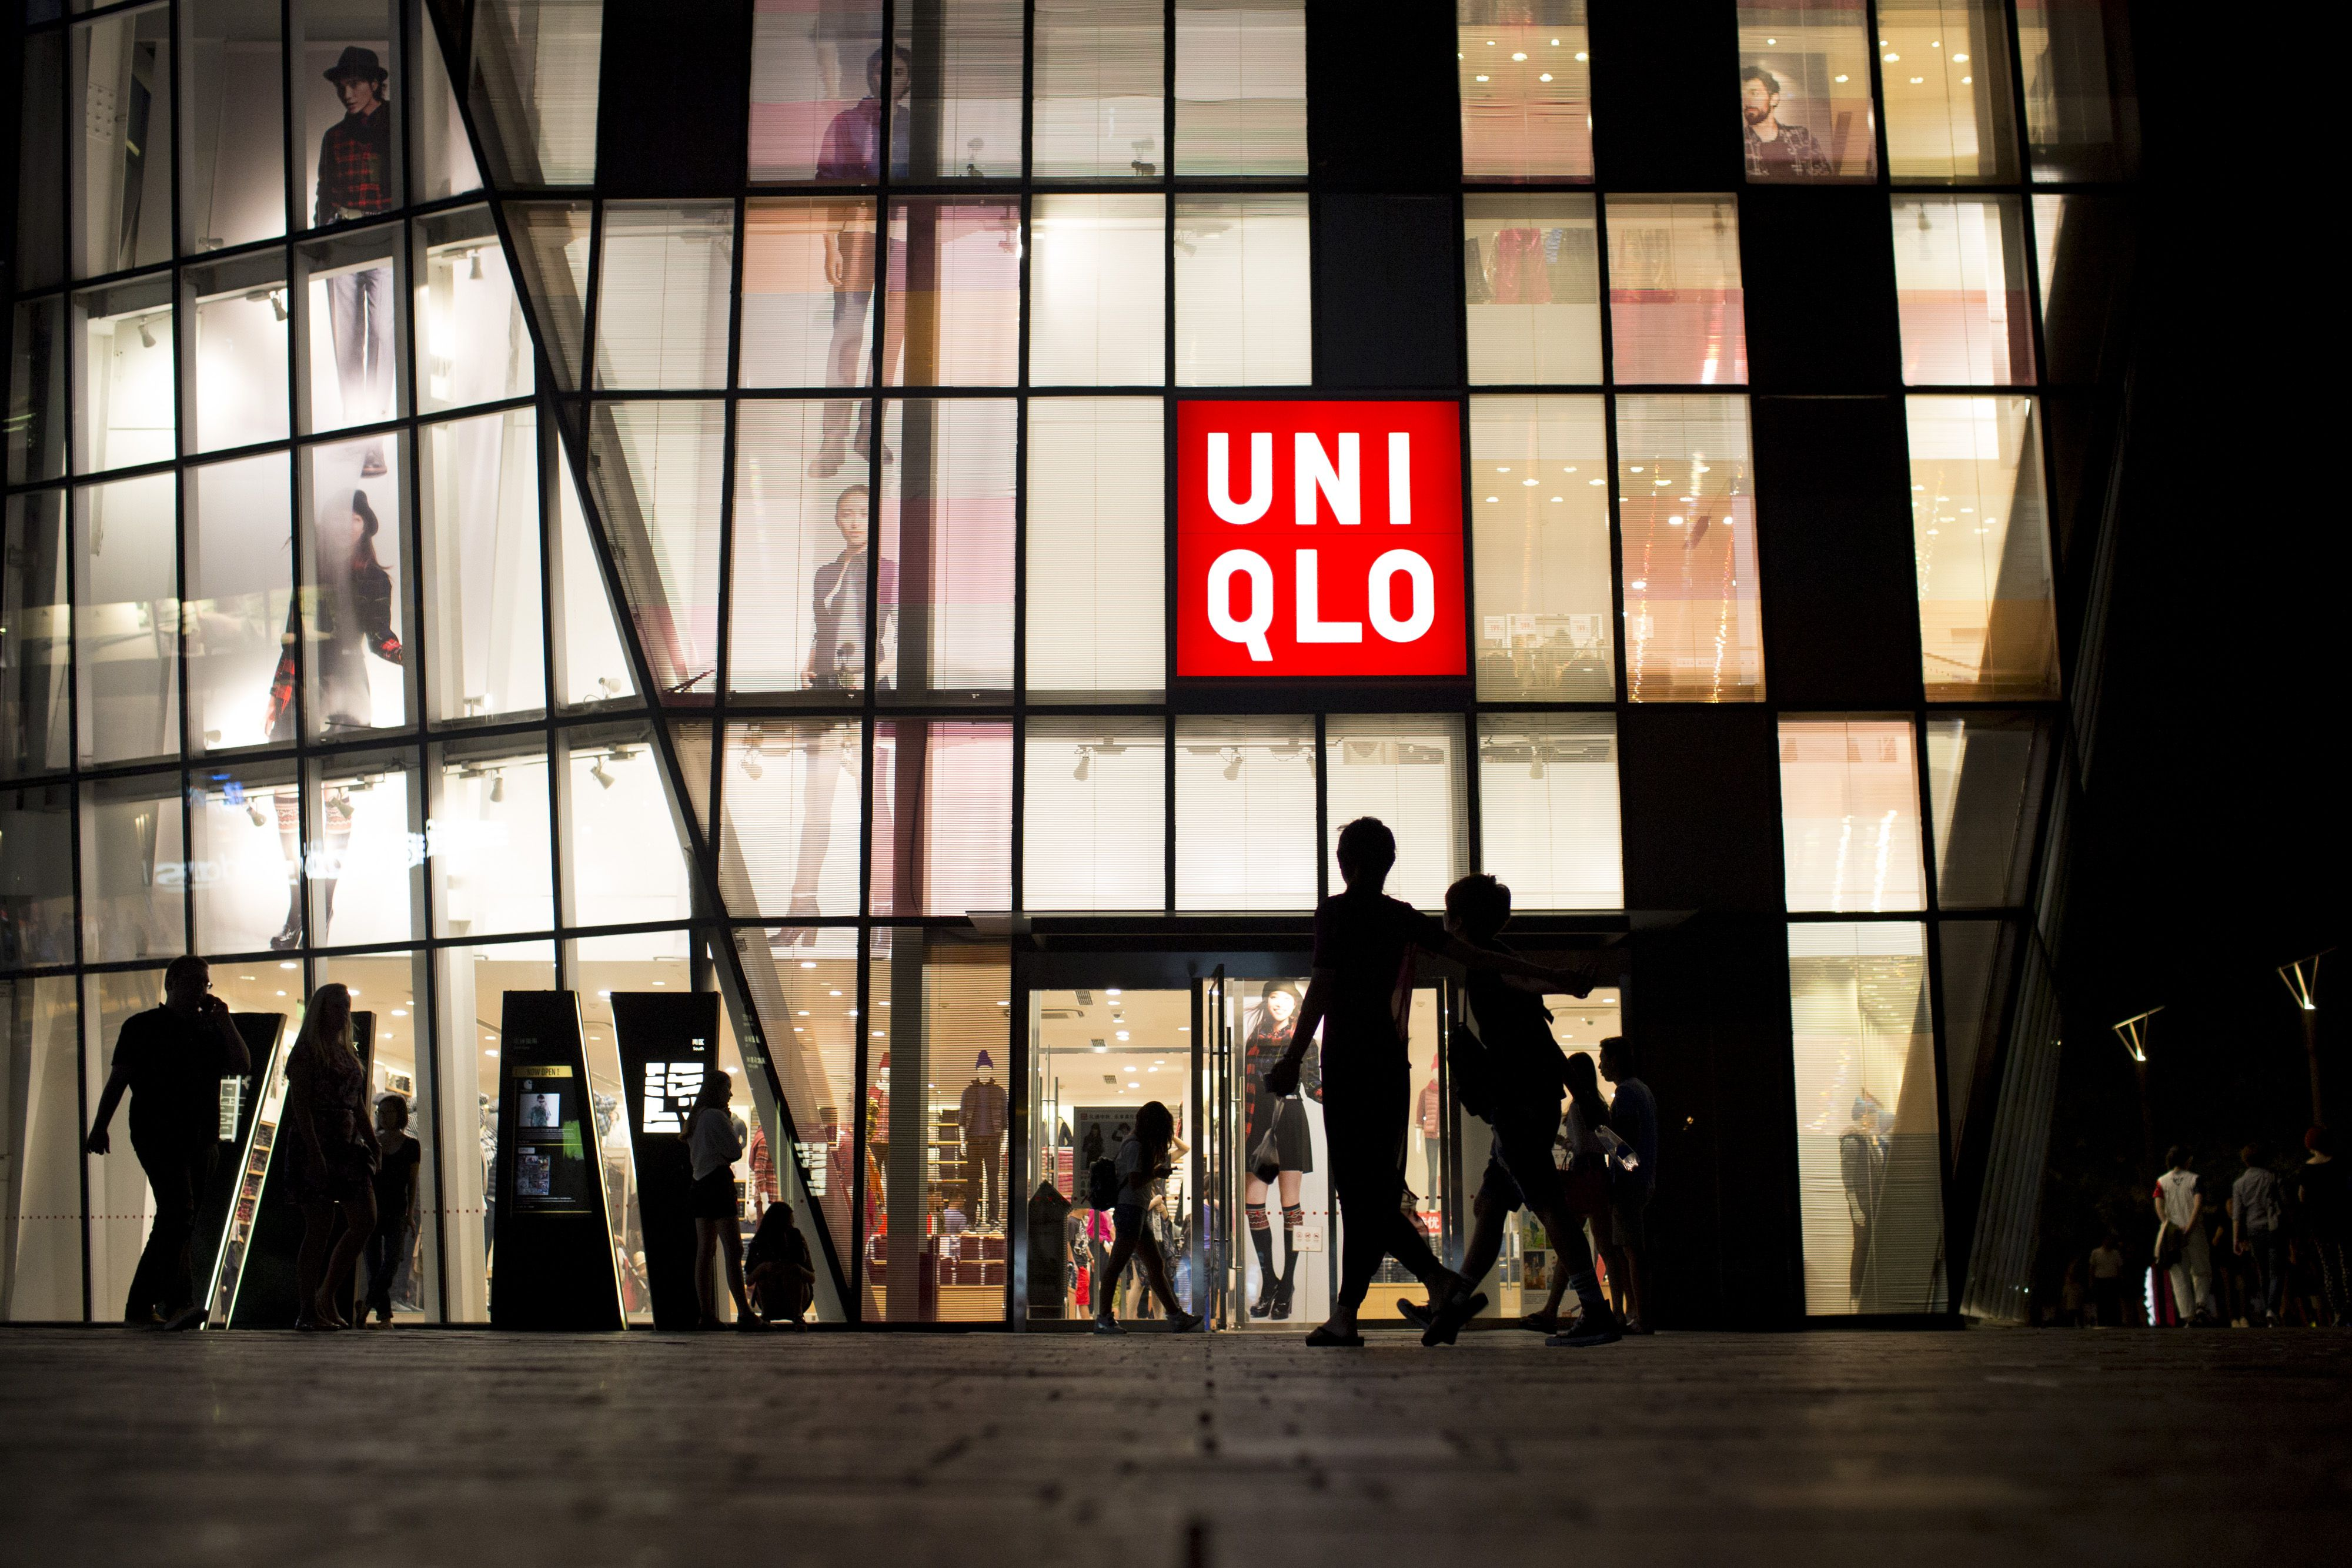 Pedestrians walk past a Uniqlo store in Beijing, China.